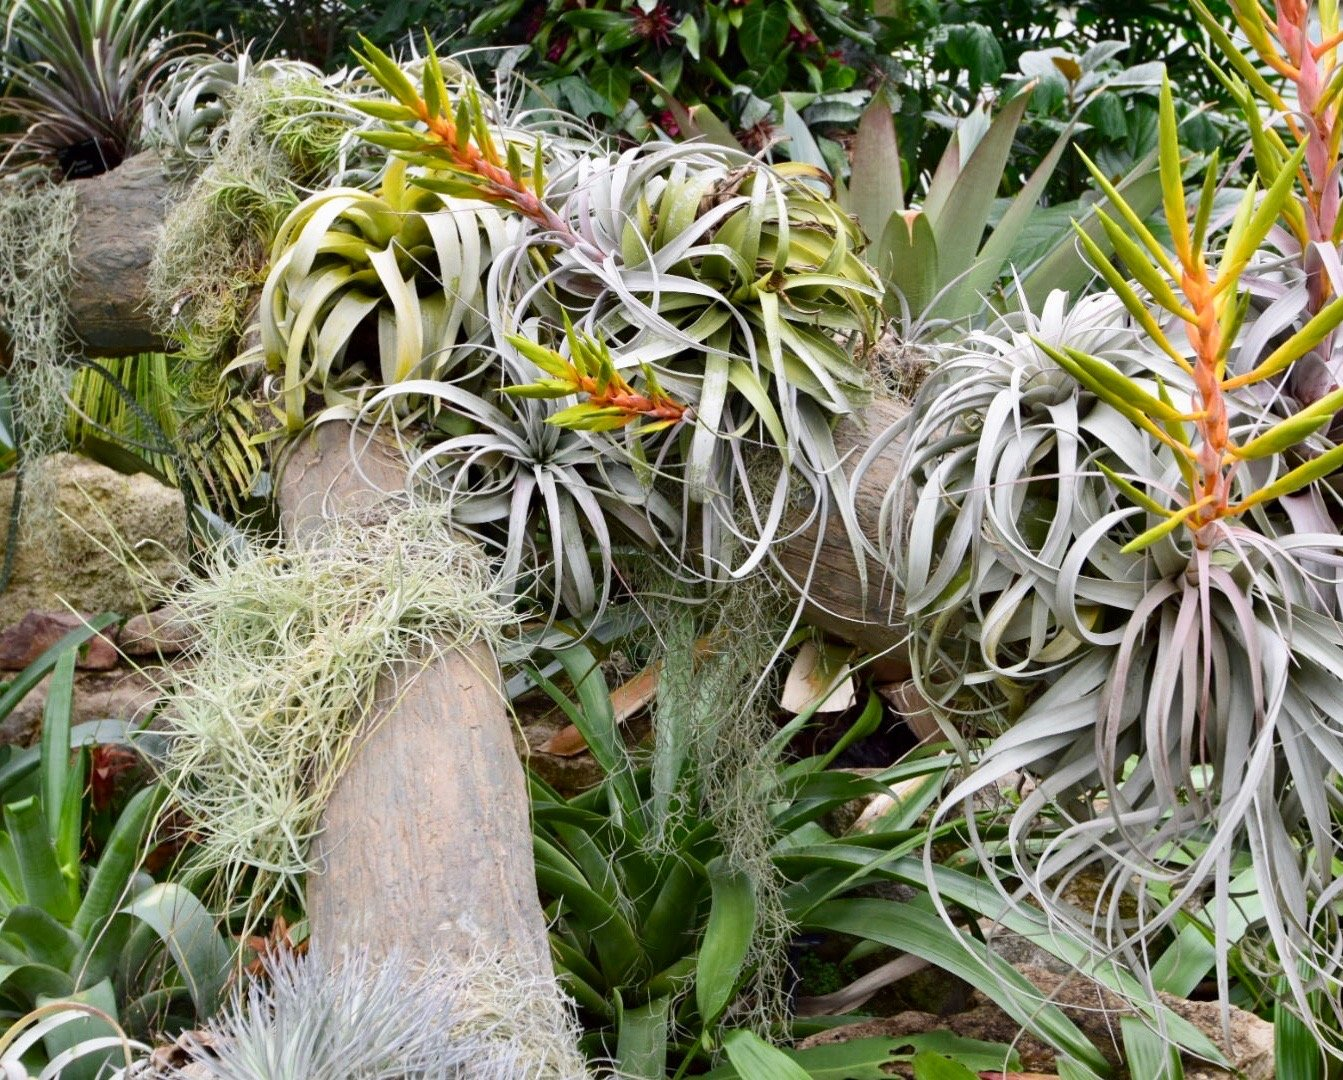 How Has Rainforest Vegetation Adapted To The Climate